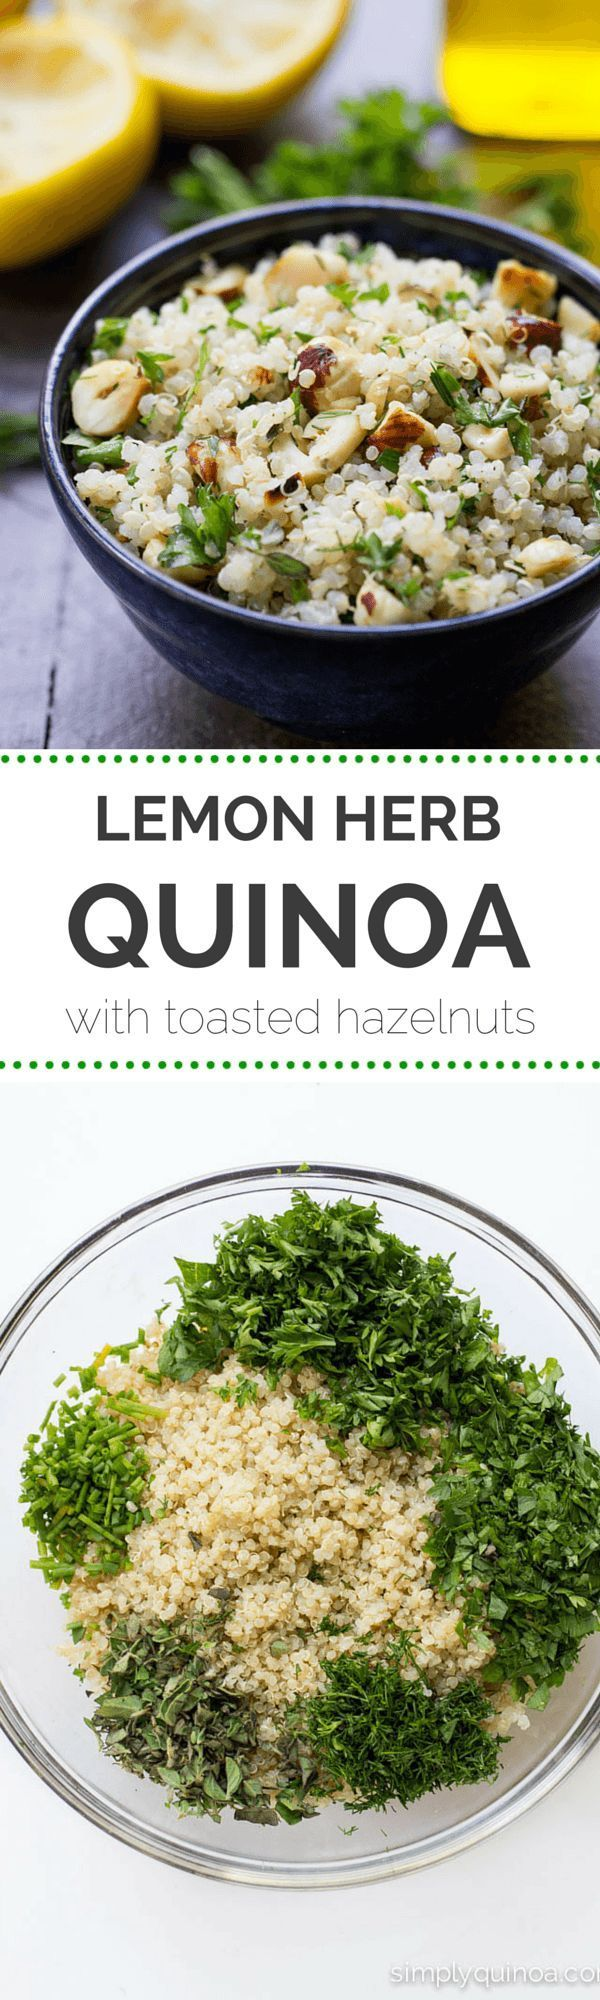 Lemon Herb Quinoa Salad with Toasted Hazelnuts - fresh, light and packed full of flavor | http://simplyquinoa.com